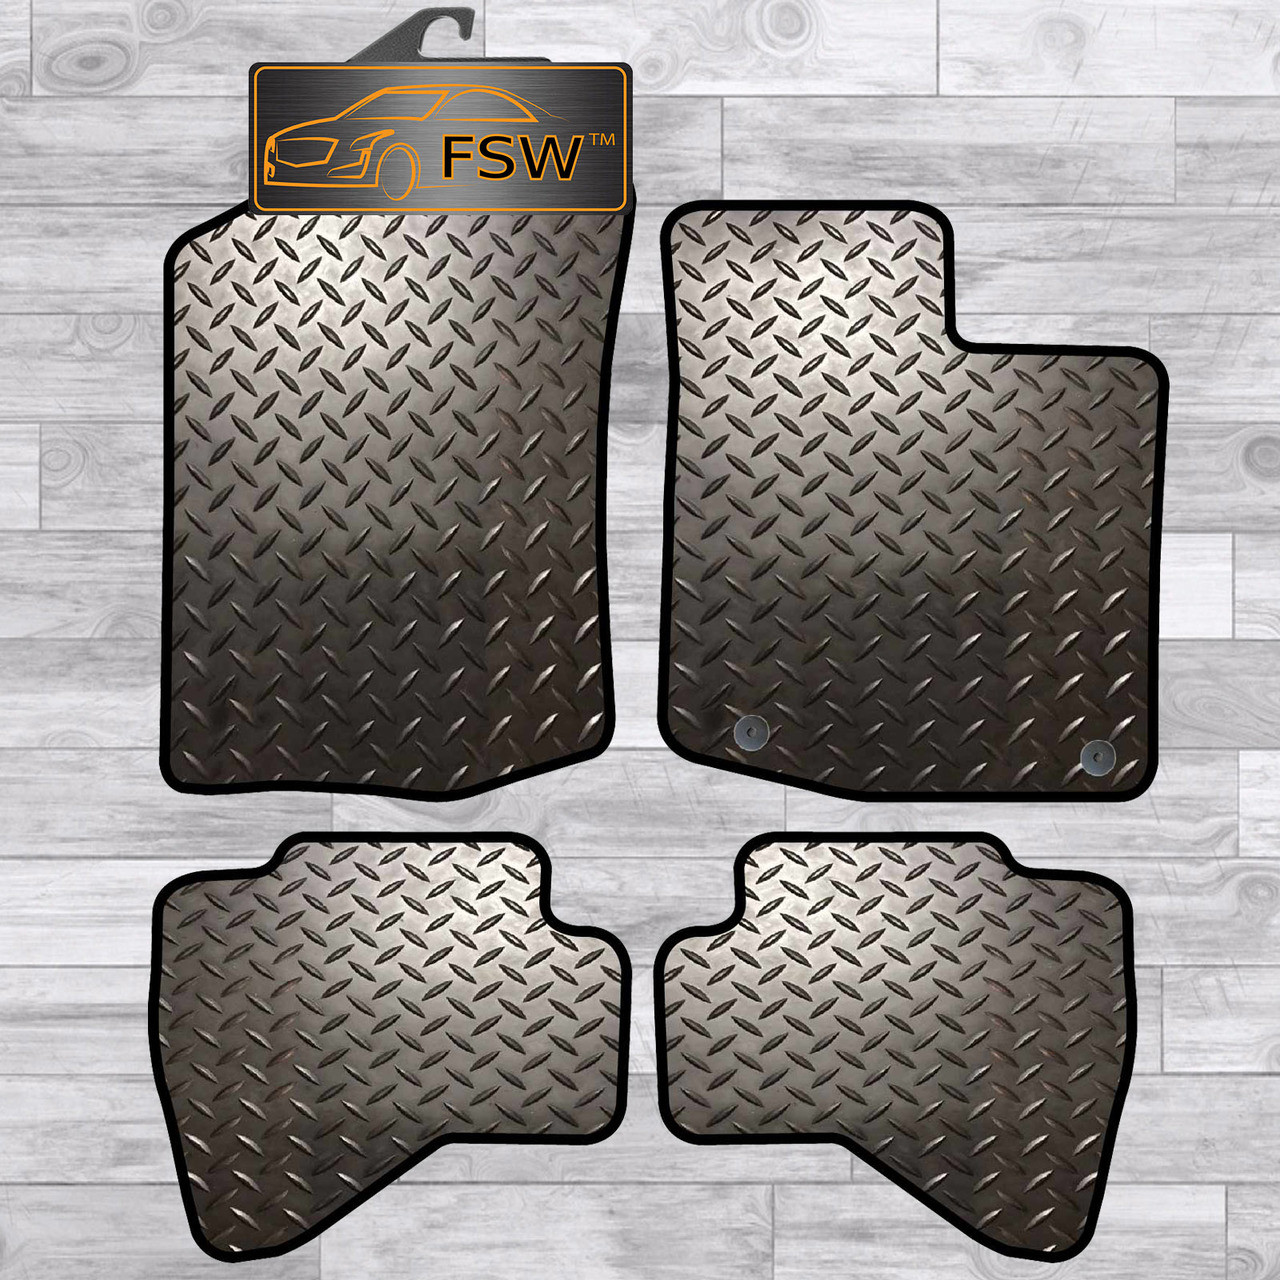 Toyota Aygo 2014 On New Toyota Clip Tailored Floor Car Mats Carpet //Rubber